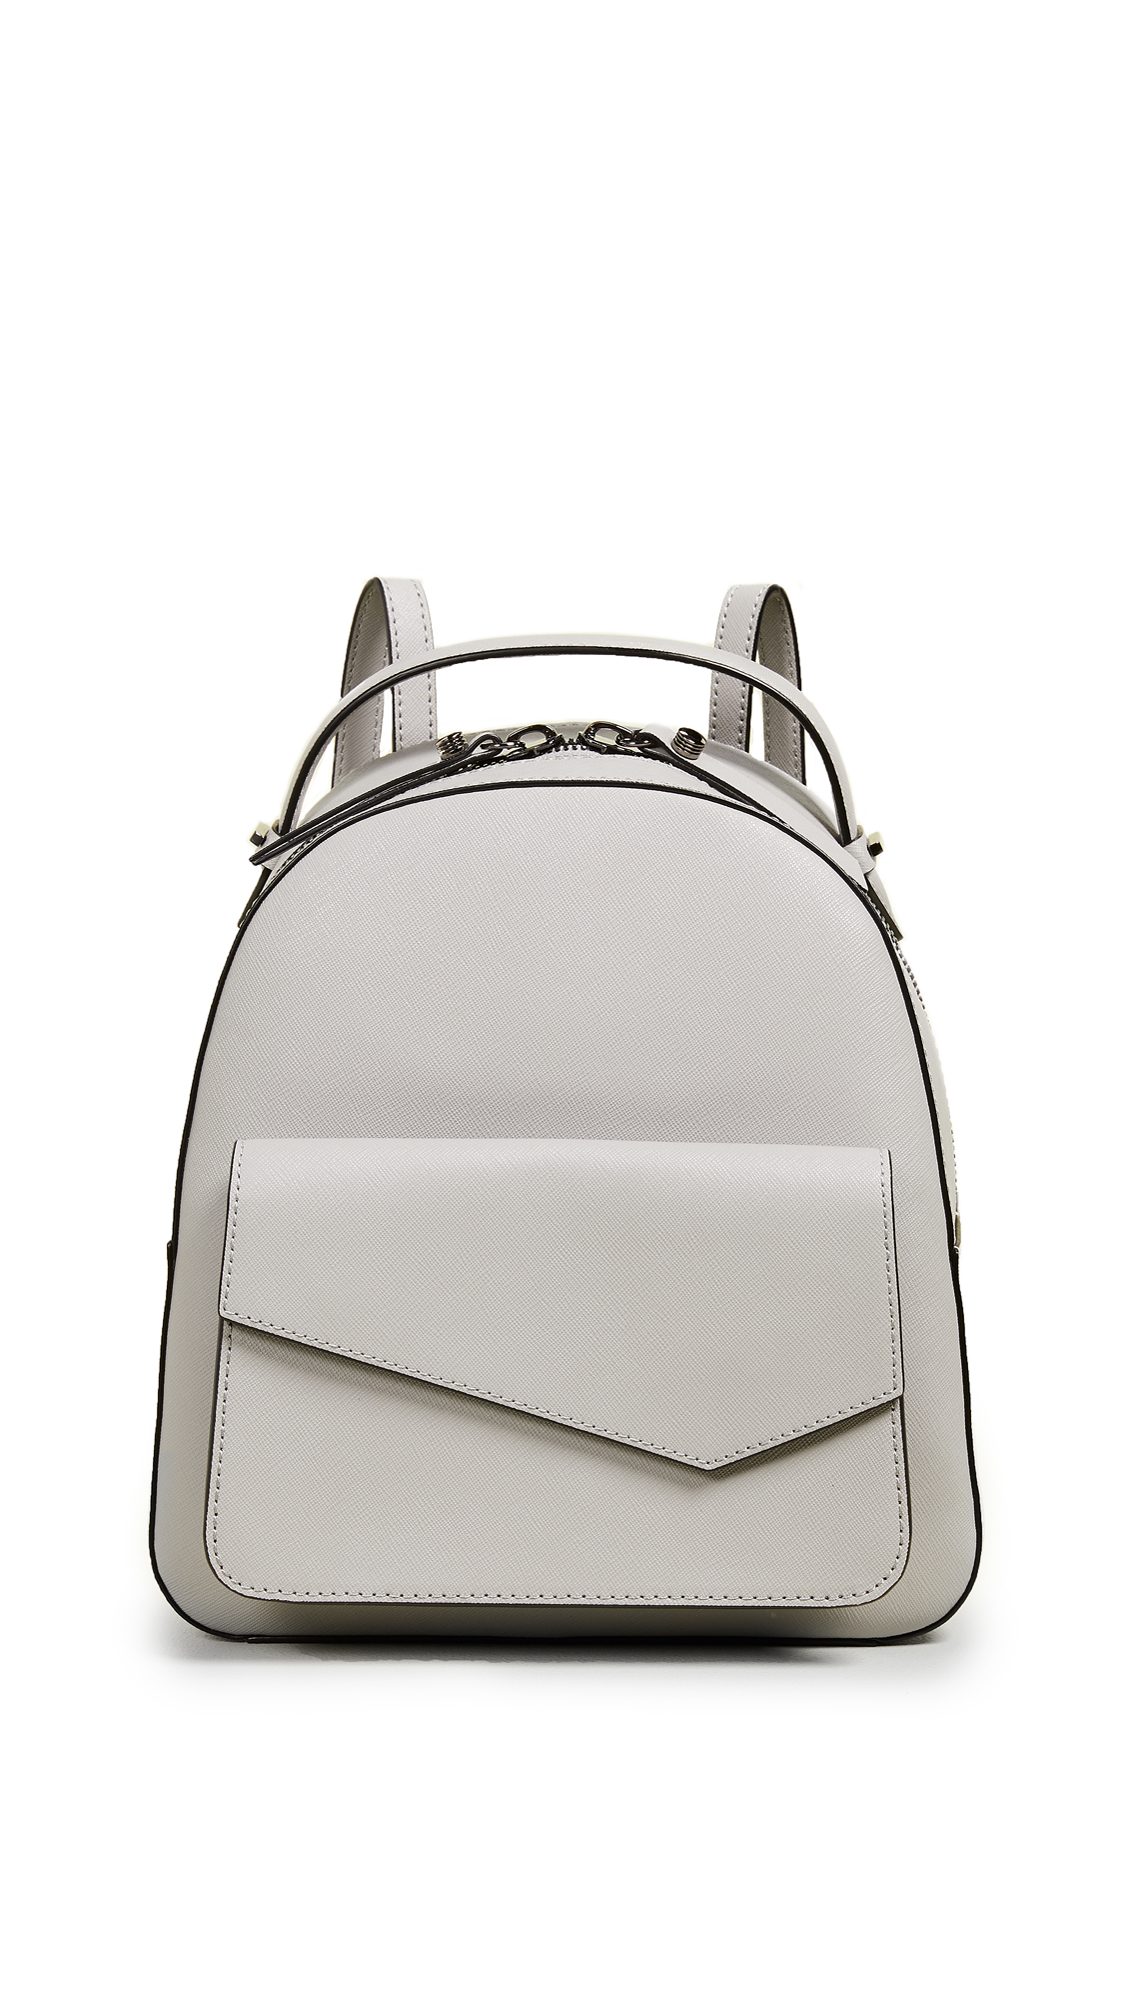 Cobble Hill Calfskin Leather Backpack - Grey, Silver Grey